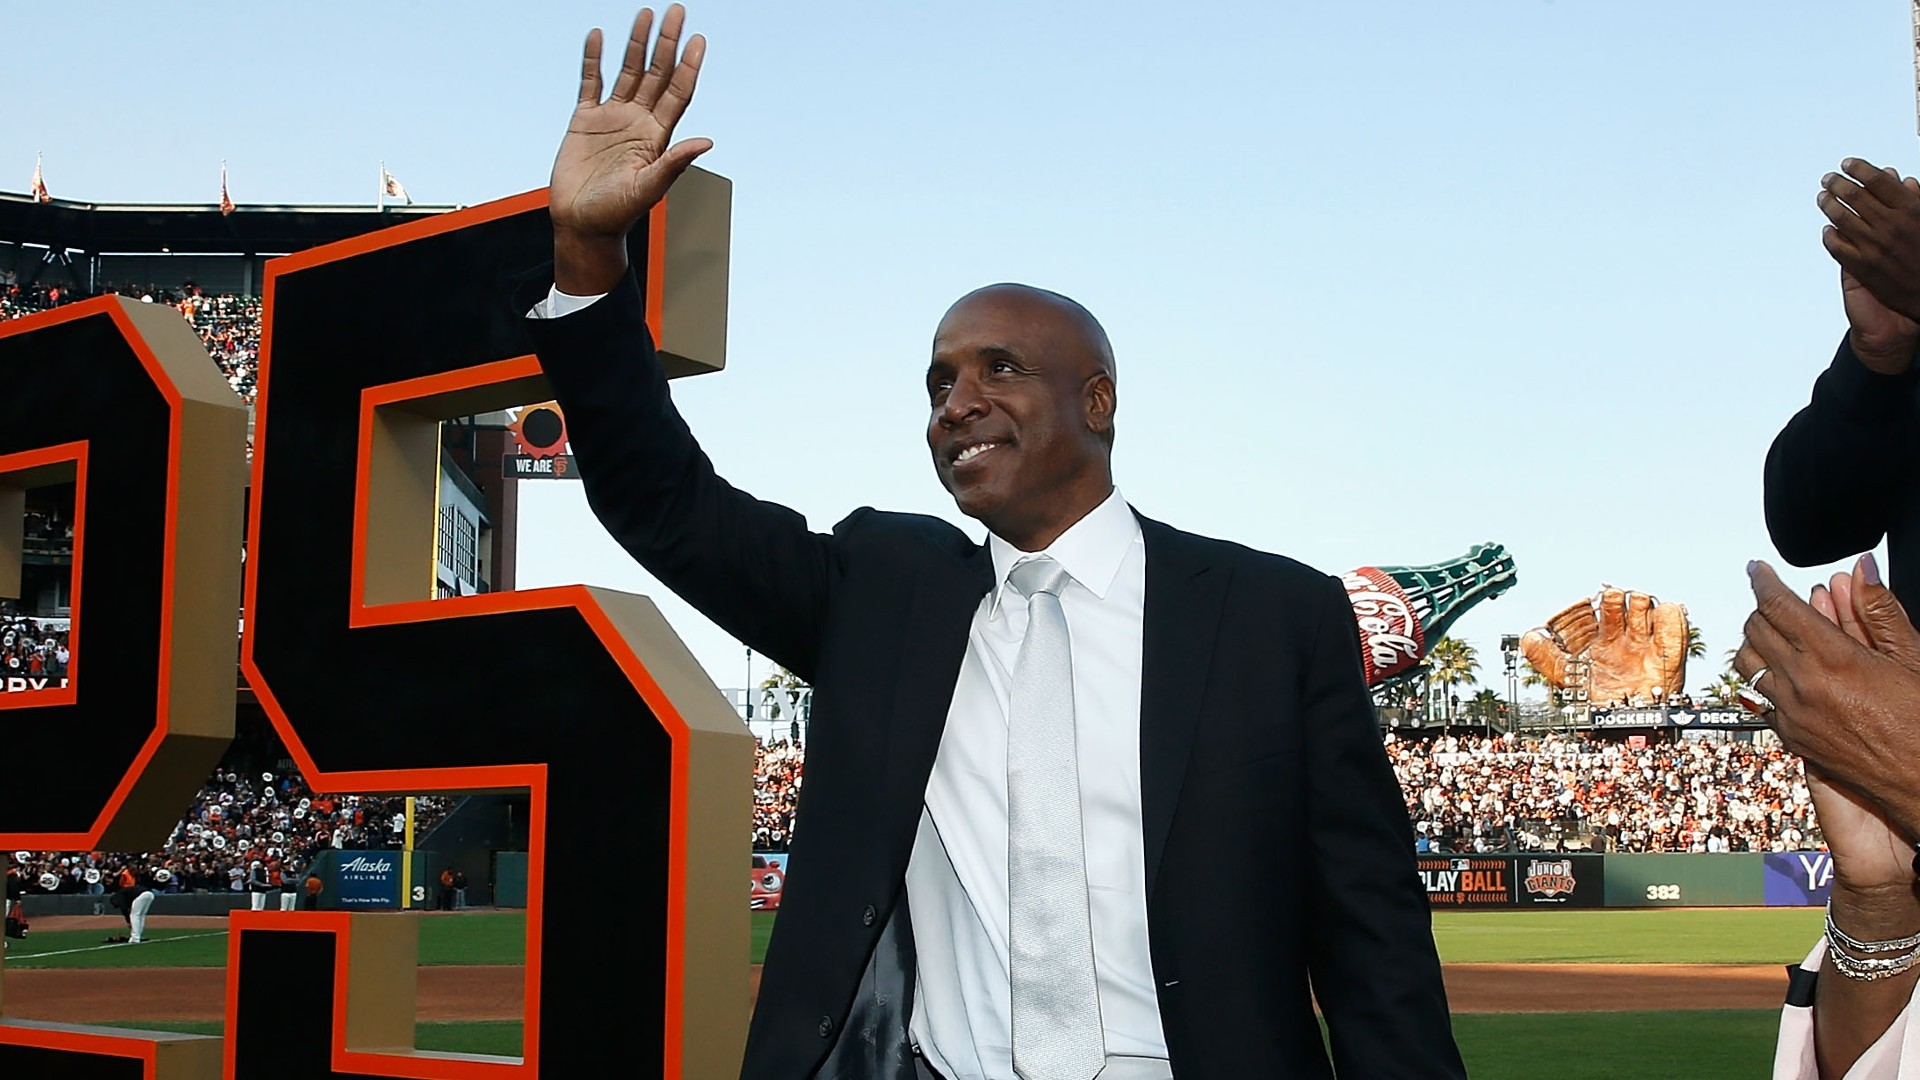 Barry Bonds is back on the field — with a dog in the 145th Westminster Dog Show